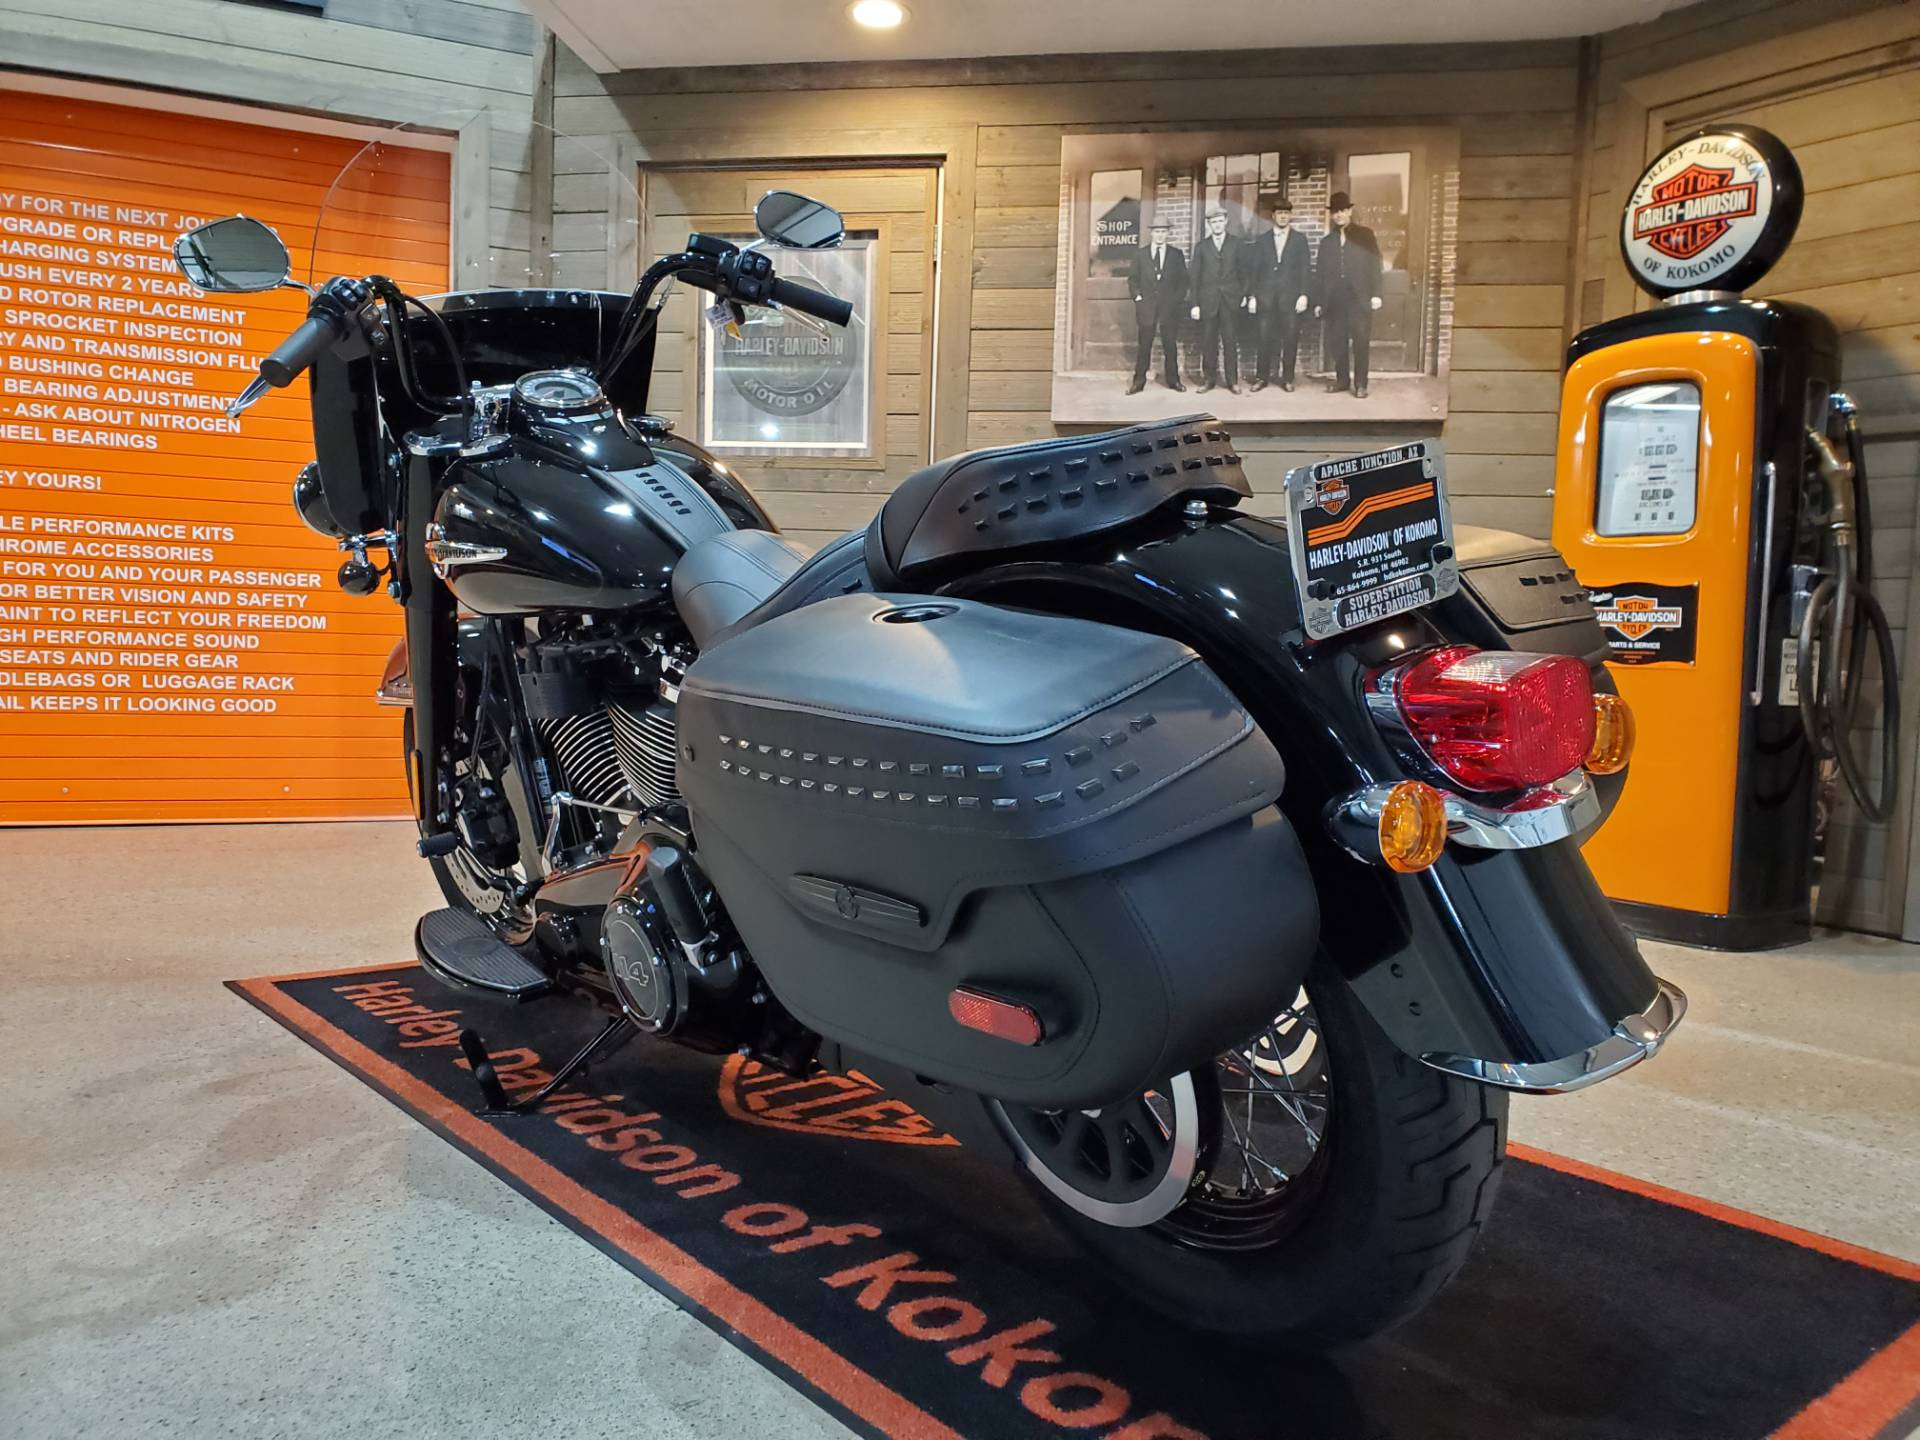 2020 Harley-Davidson Heritage Classic 114 in Kokomo, Indiana - Photo 9